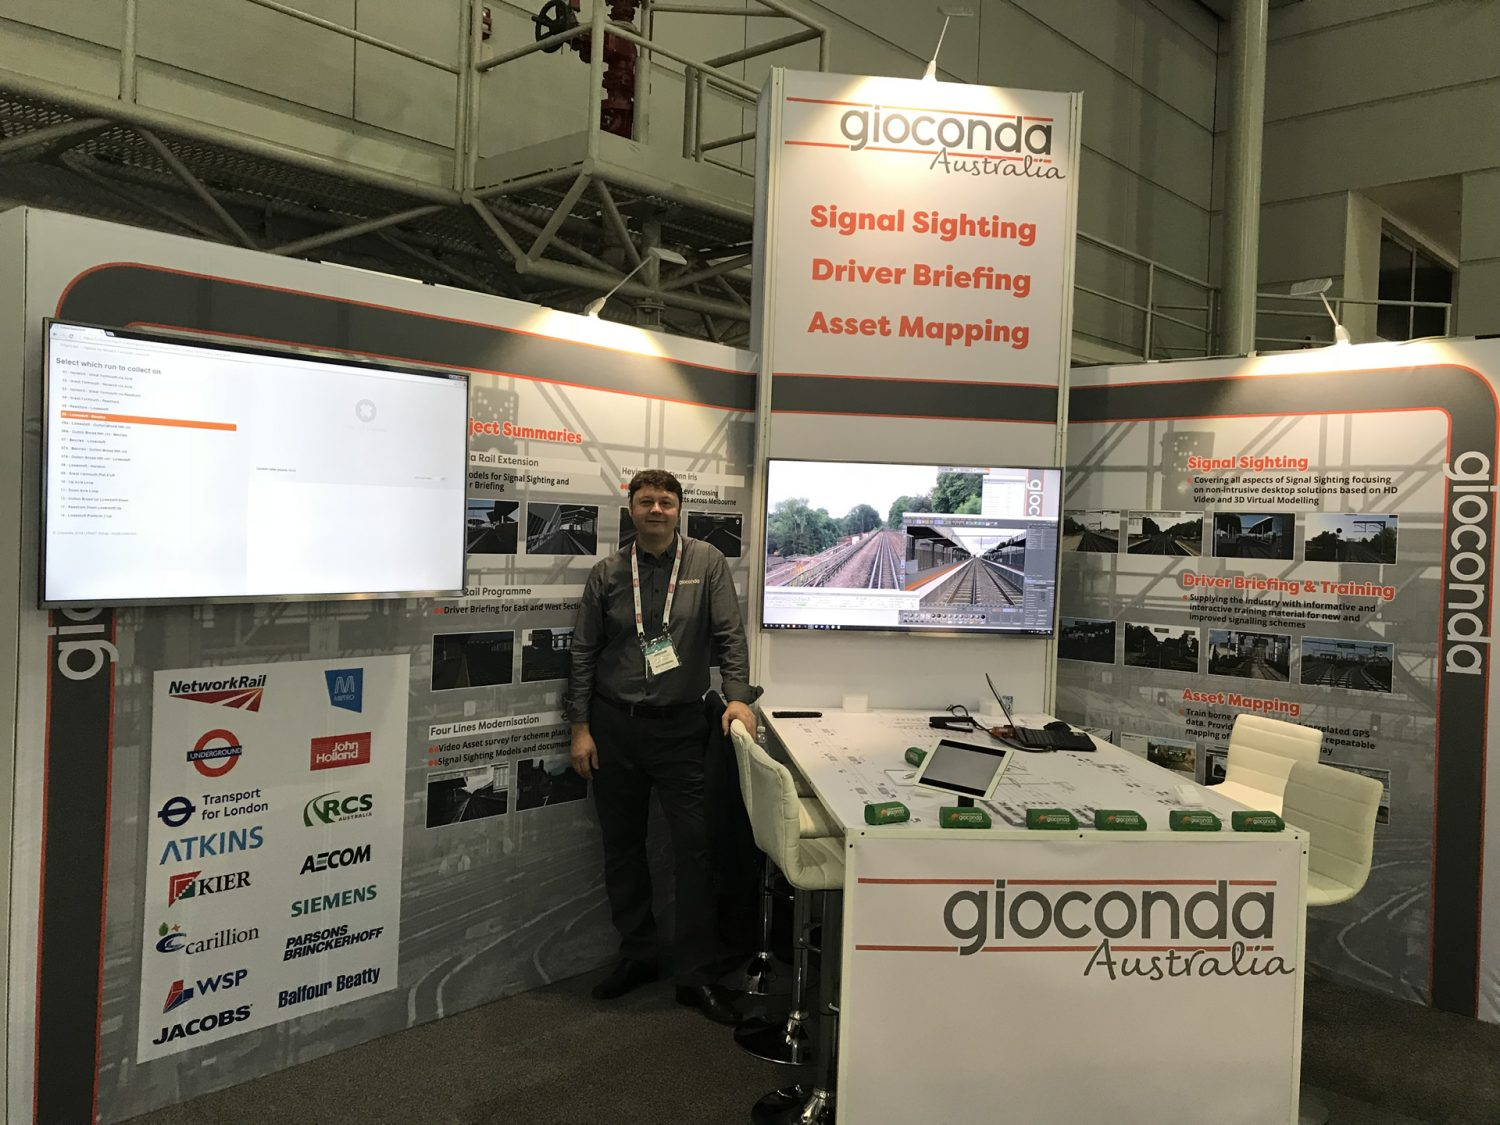 Gioconda at AusRail 2017 ready to go